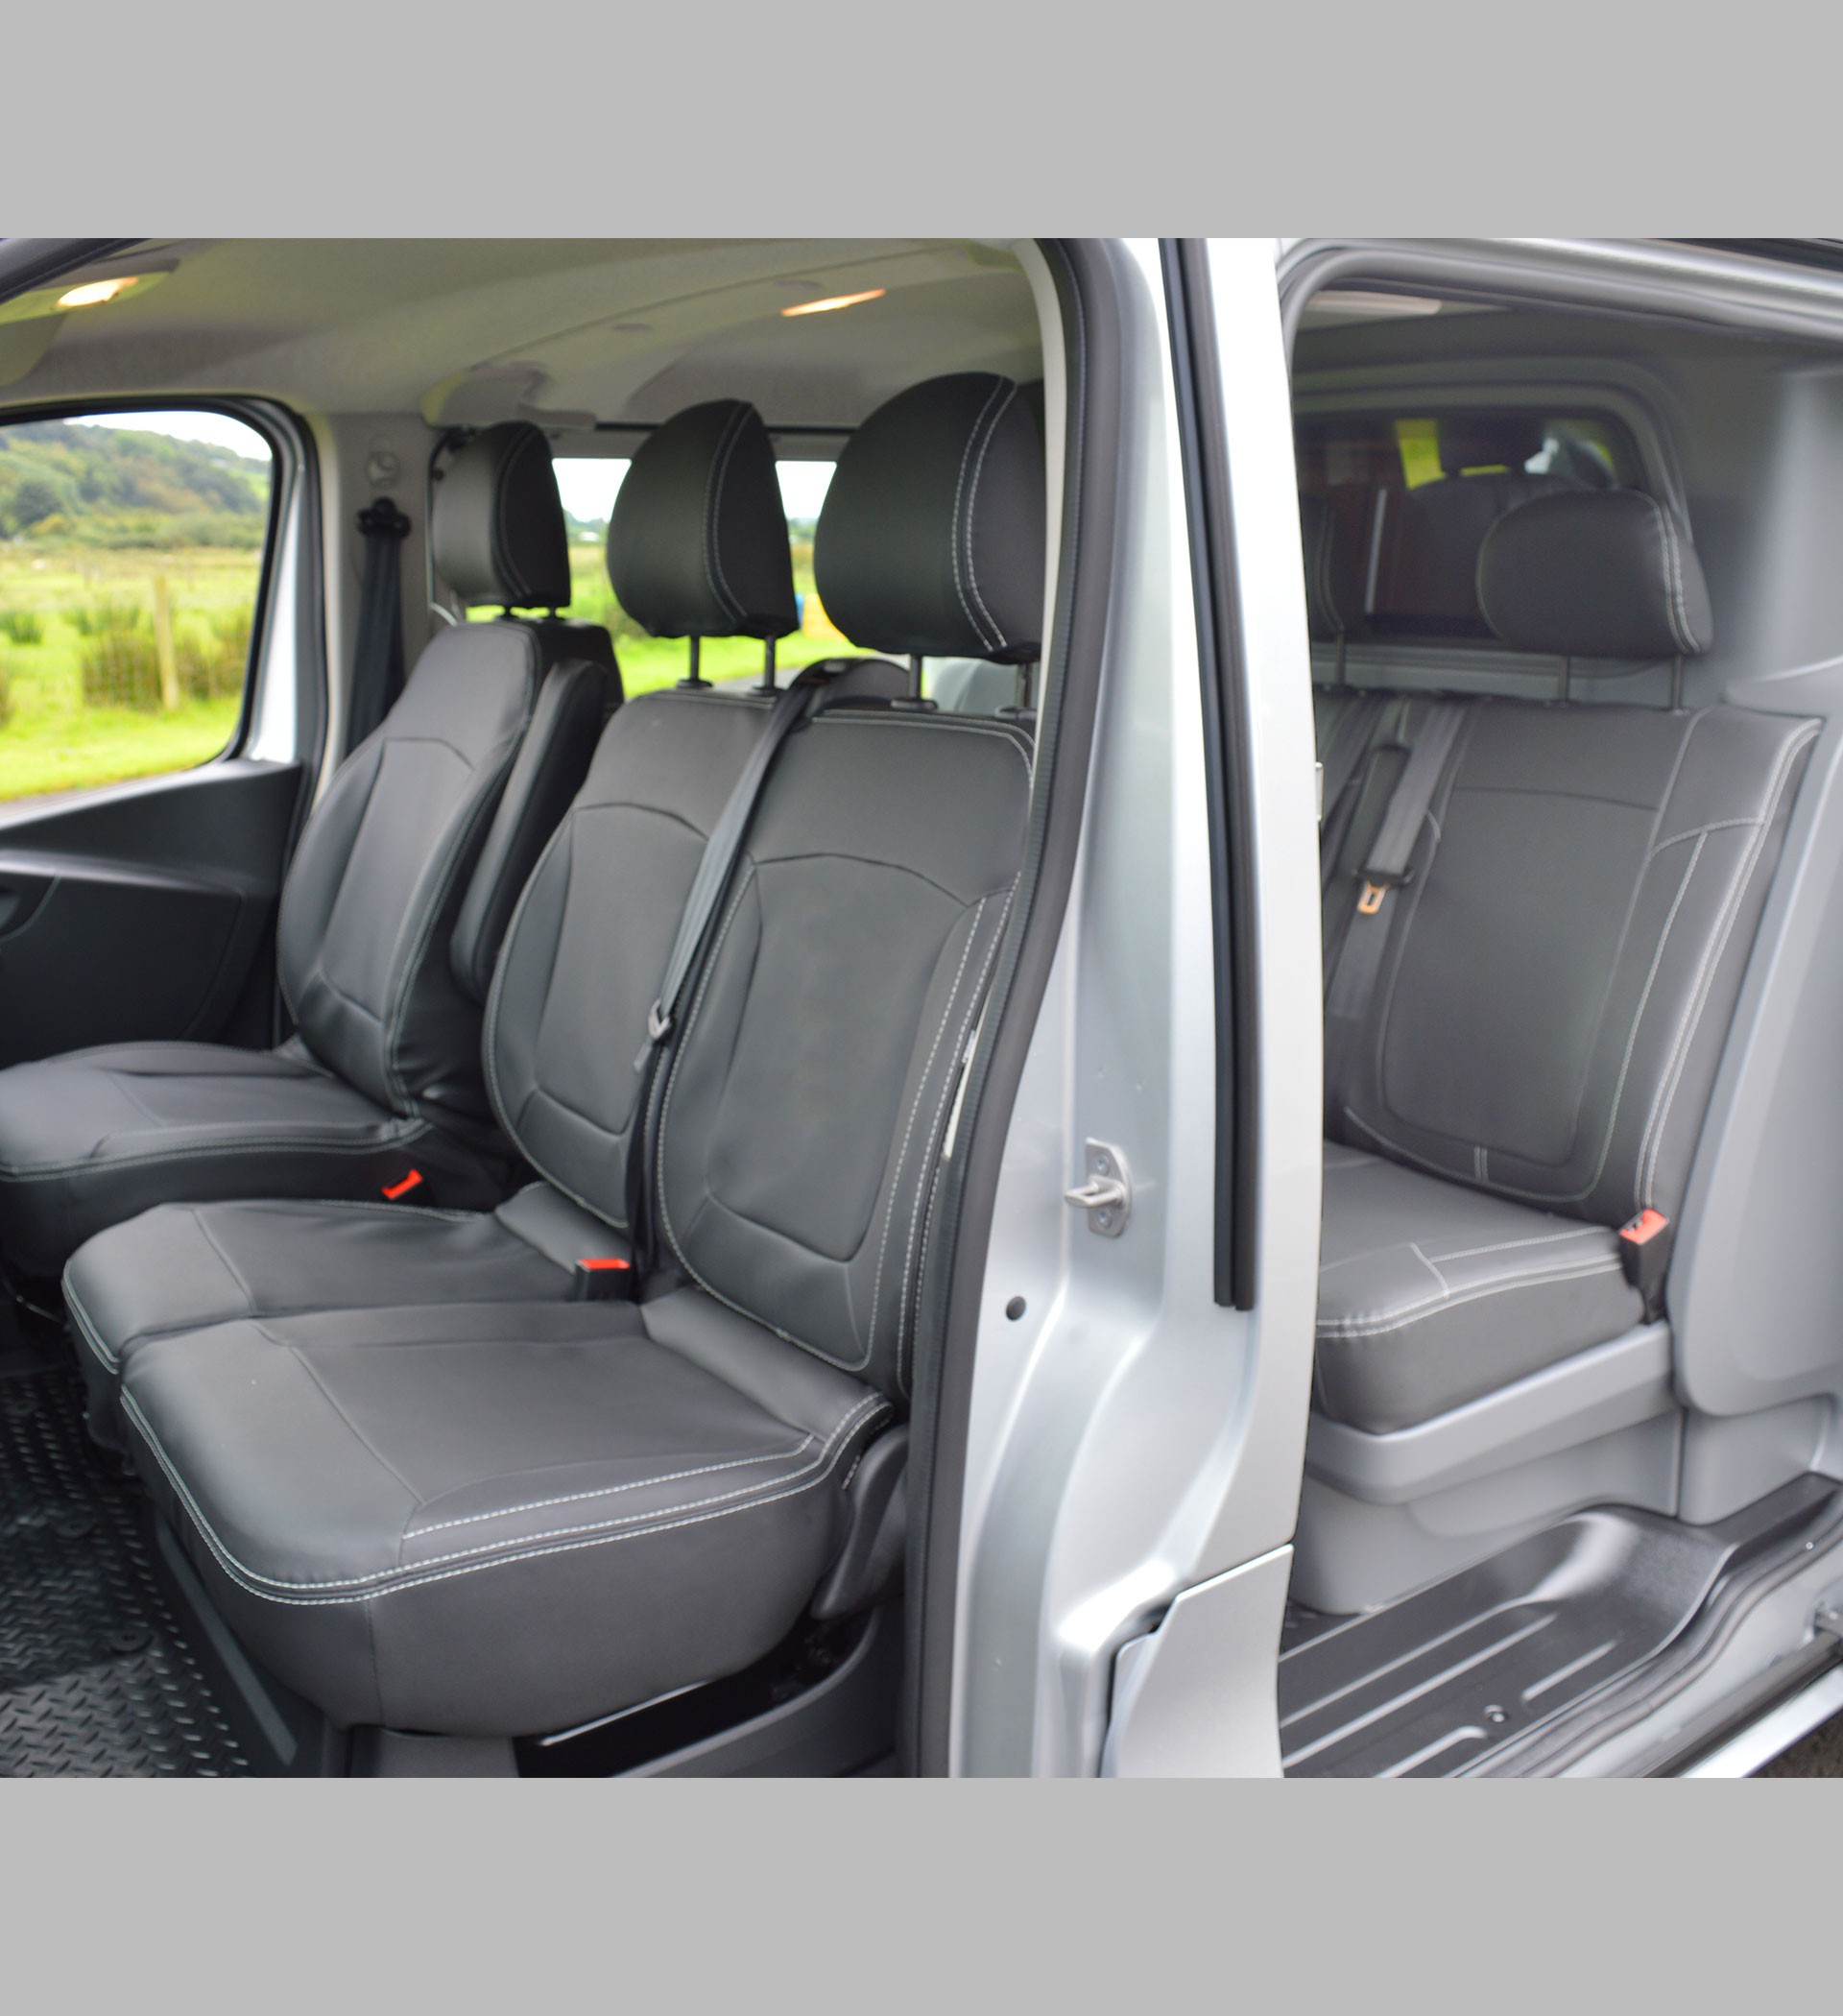 Renault Trafic Crew / Double Cab Tailored Leather Look Van seat covers